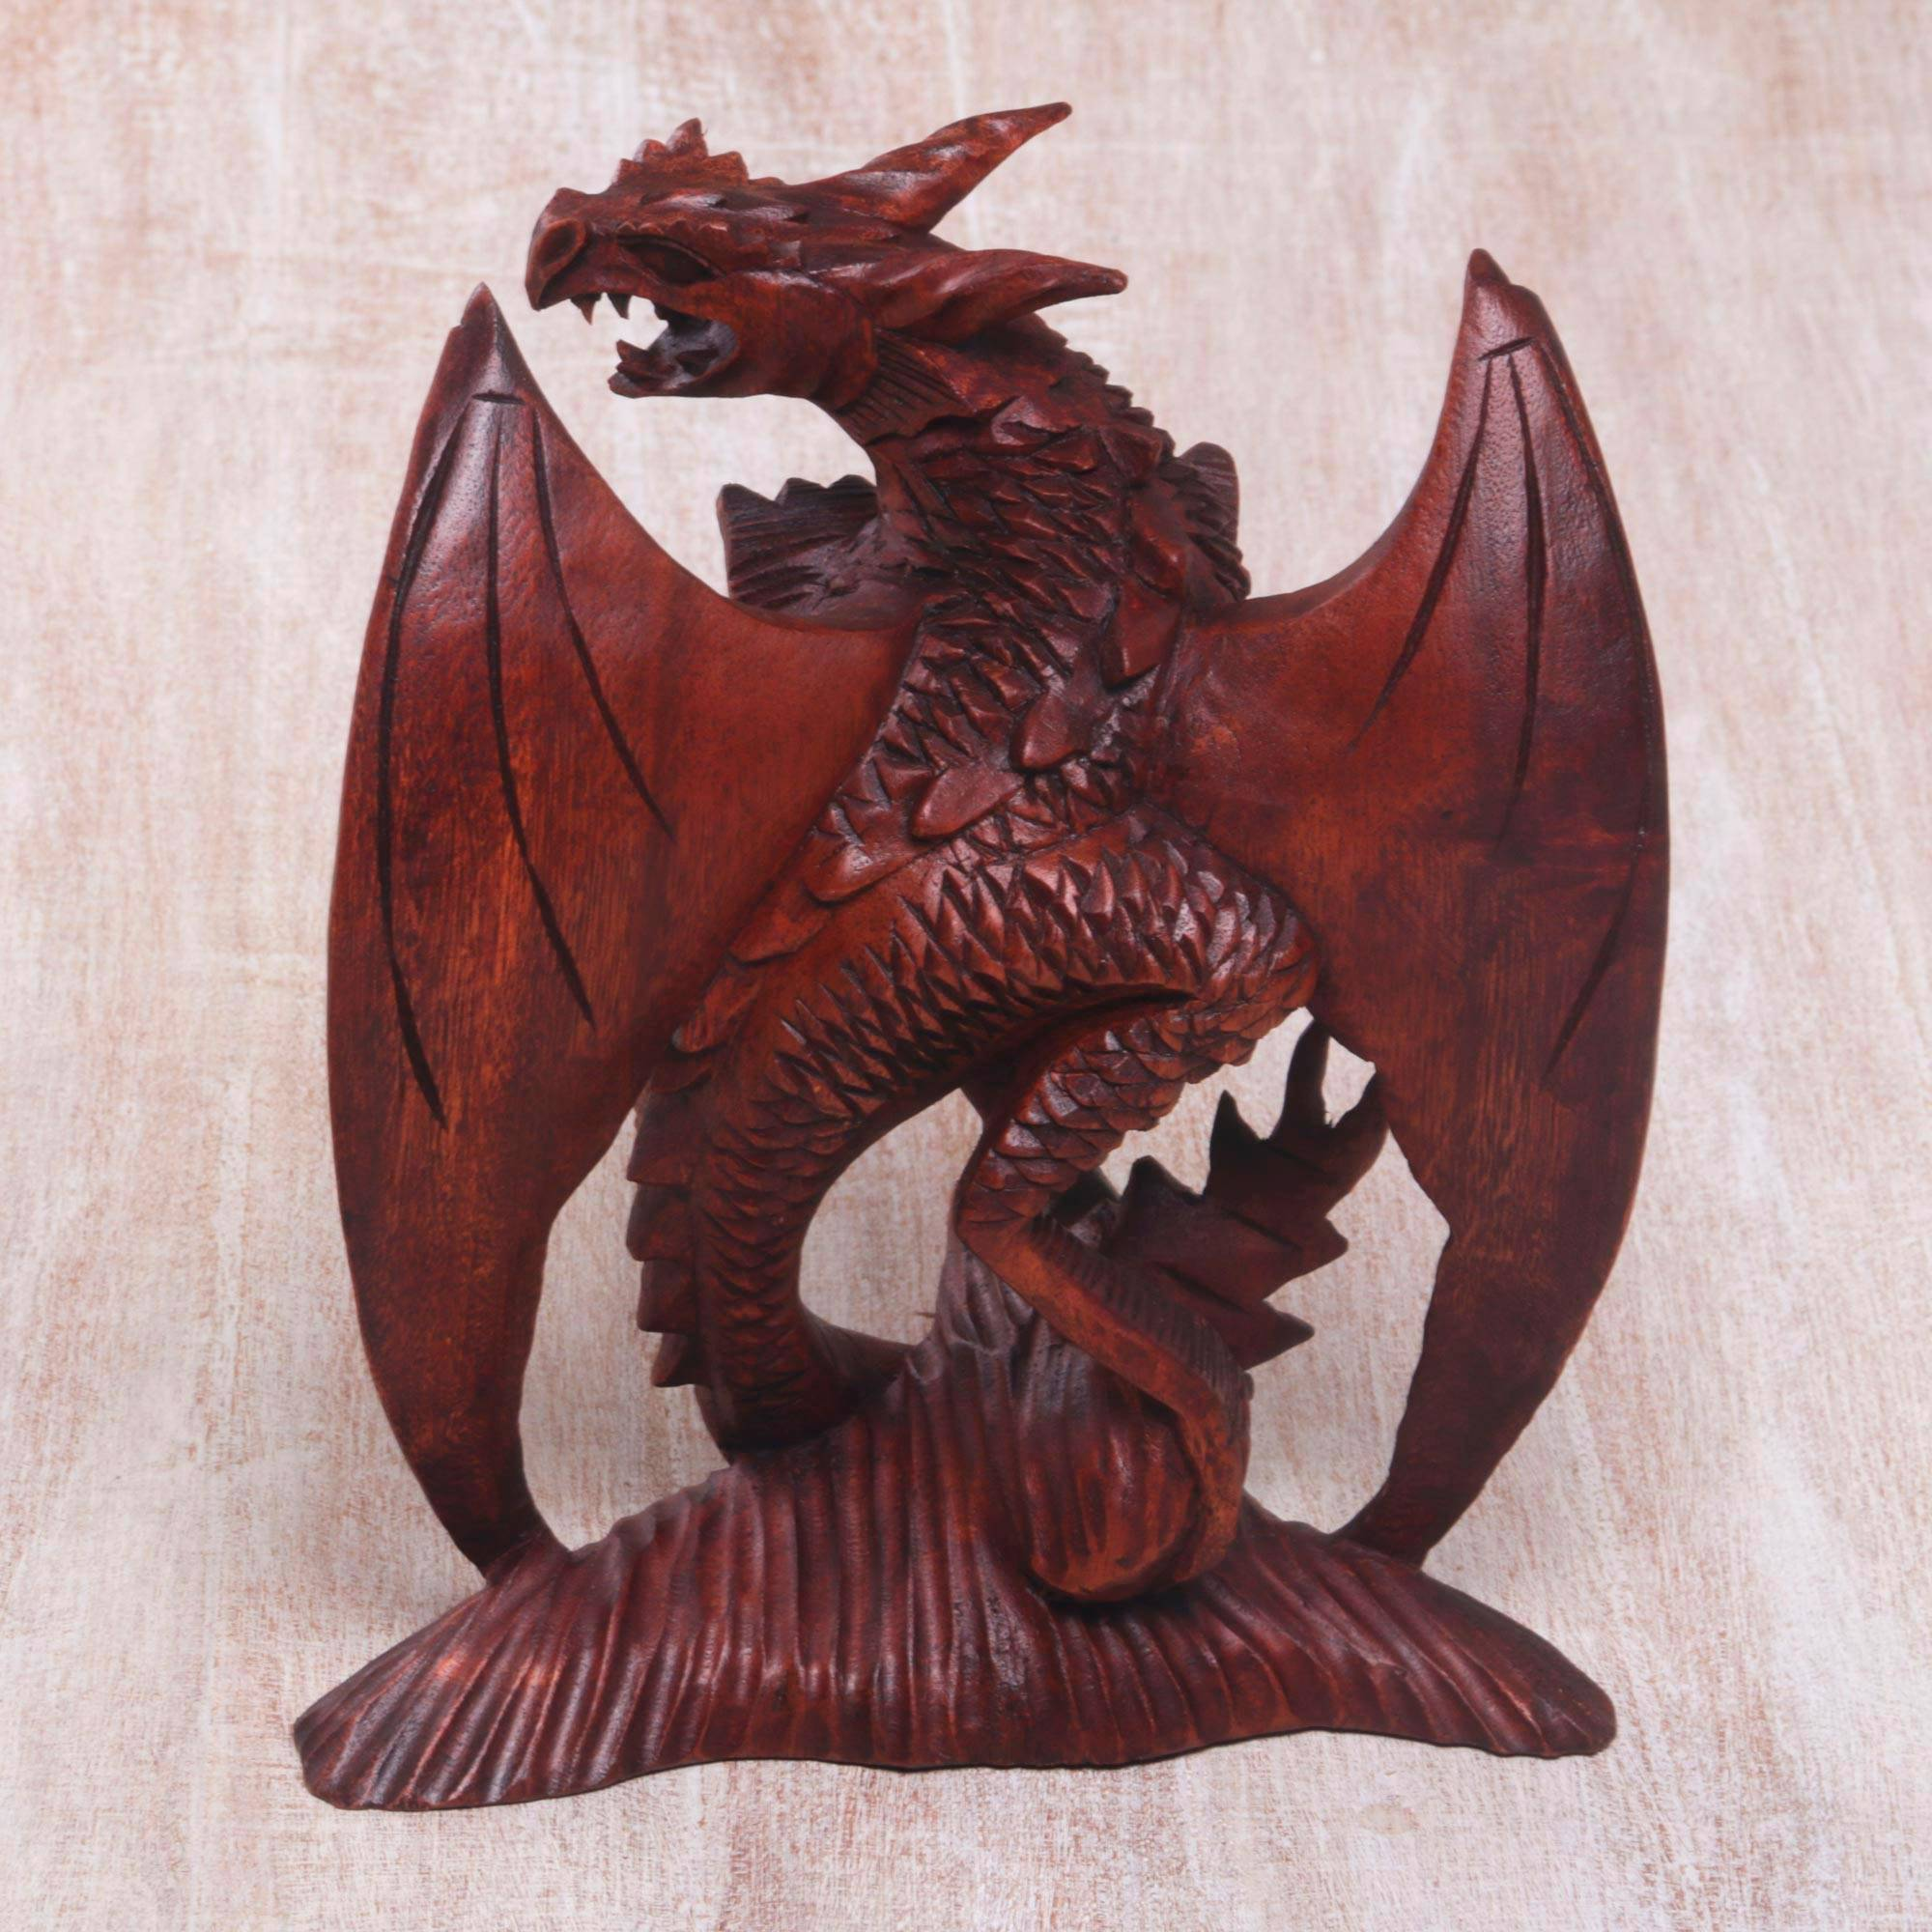 Hand Carved Suar Wood Dragon Sculpture From Bali Gallant Dragon Novica